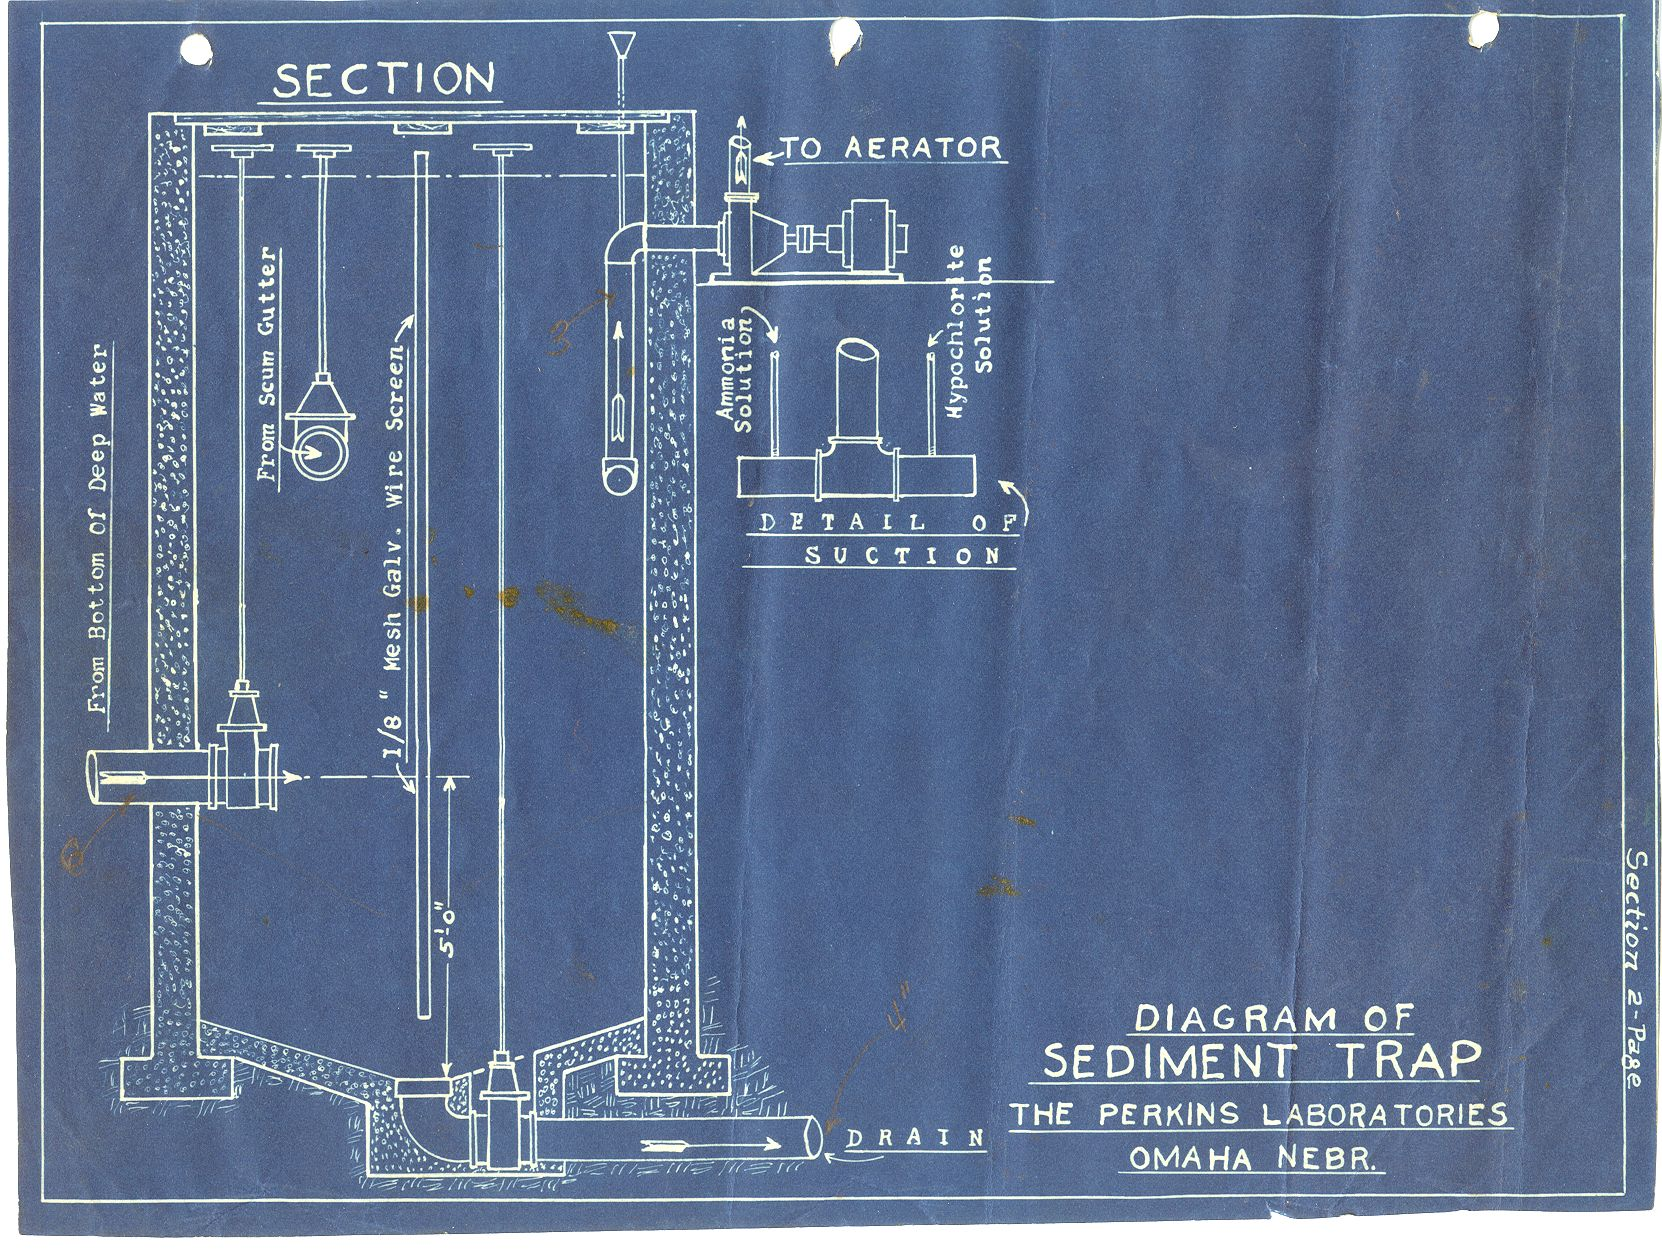 Carrs pool ames historical society carrs pool filter blueprint malvernweather Gallery